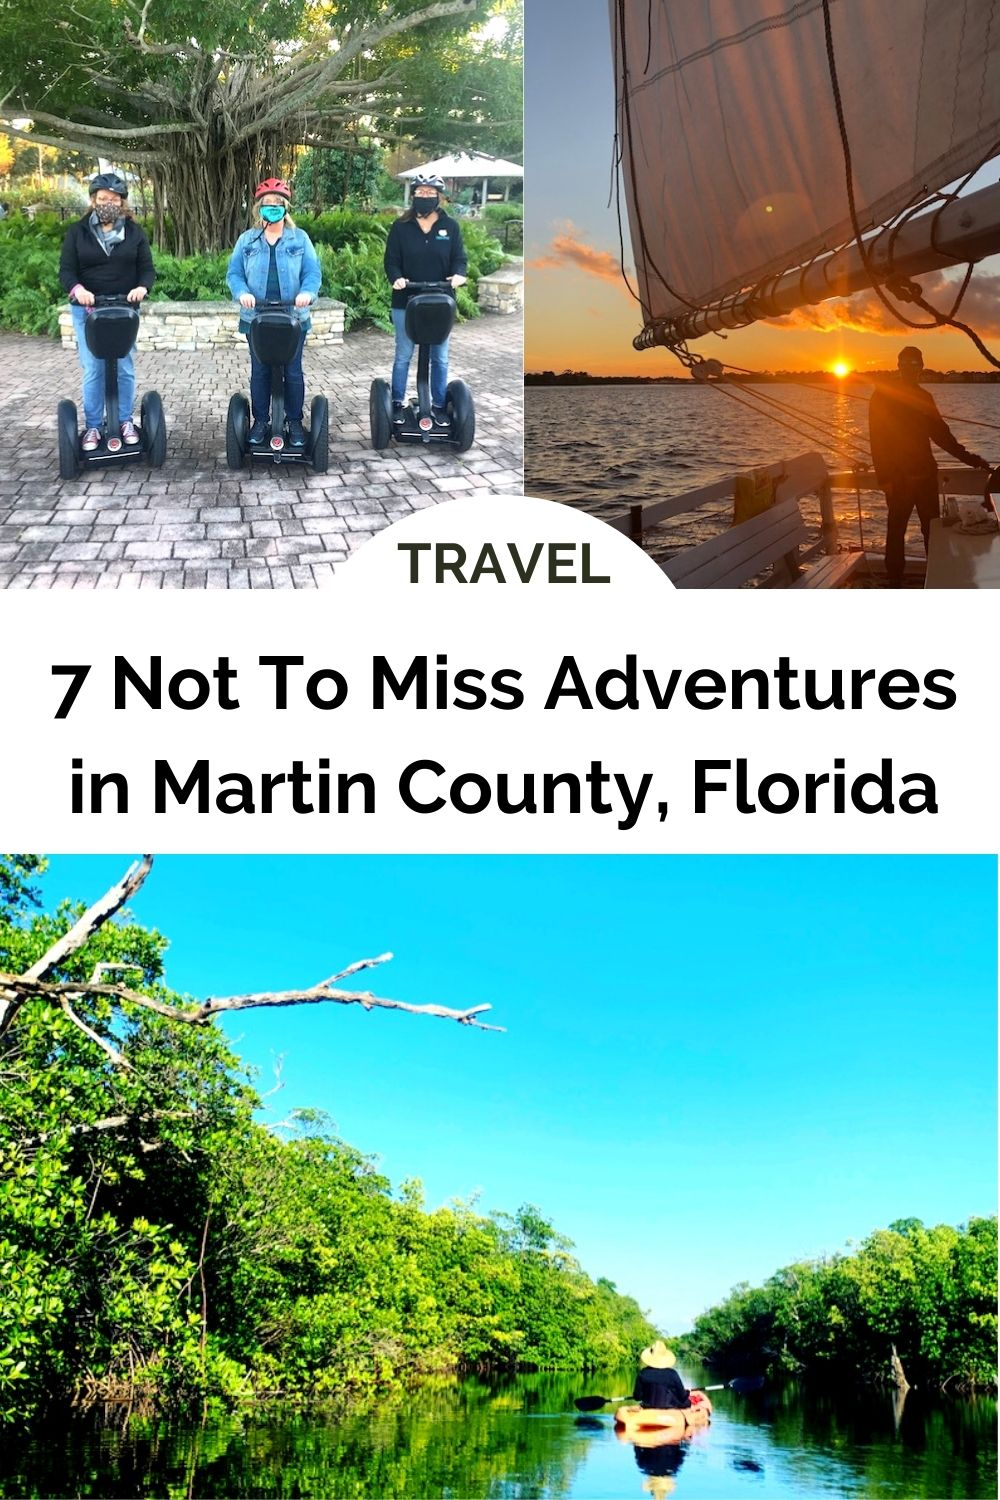 7 Not To Miss Adventures in Martin County, Florida